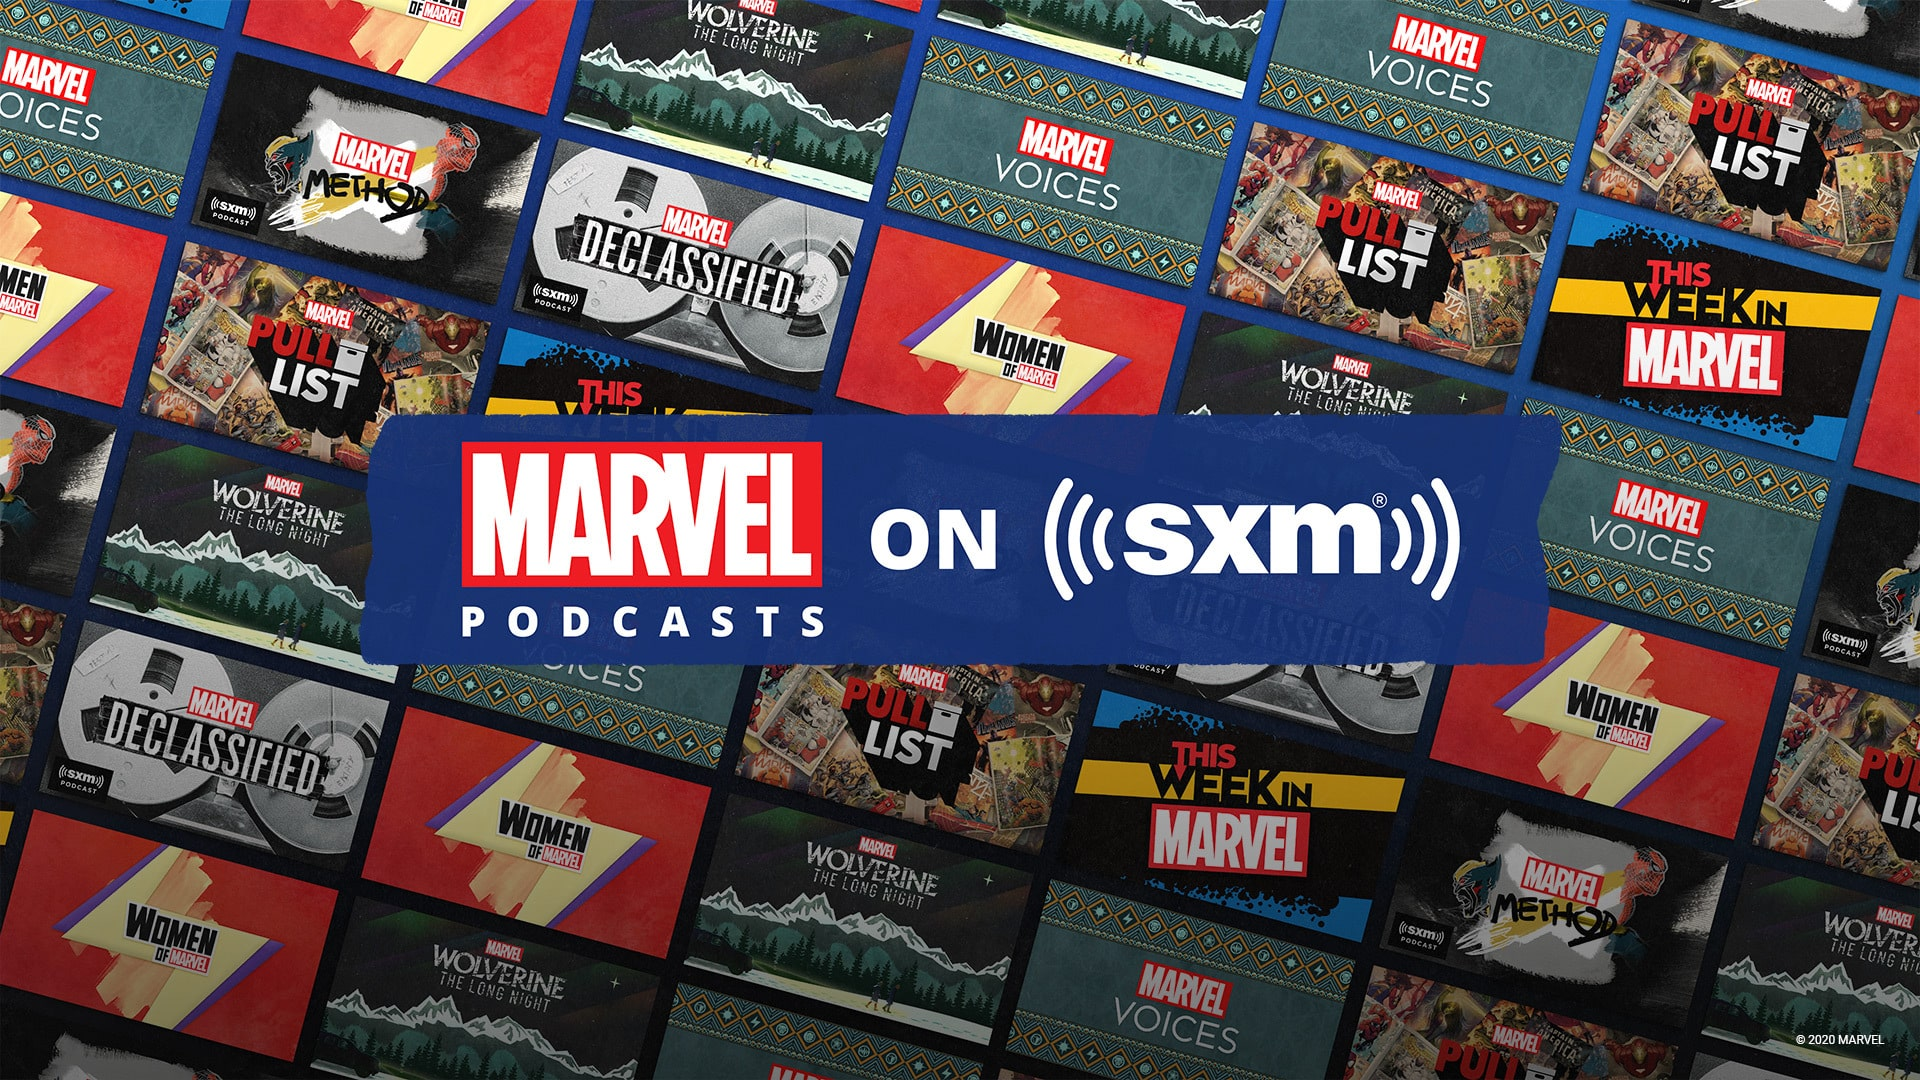 Marvel Entertainment launching podcasts exclusive to SiriusXM today through 2021